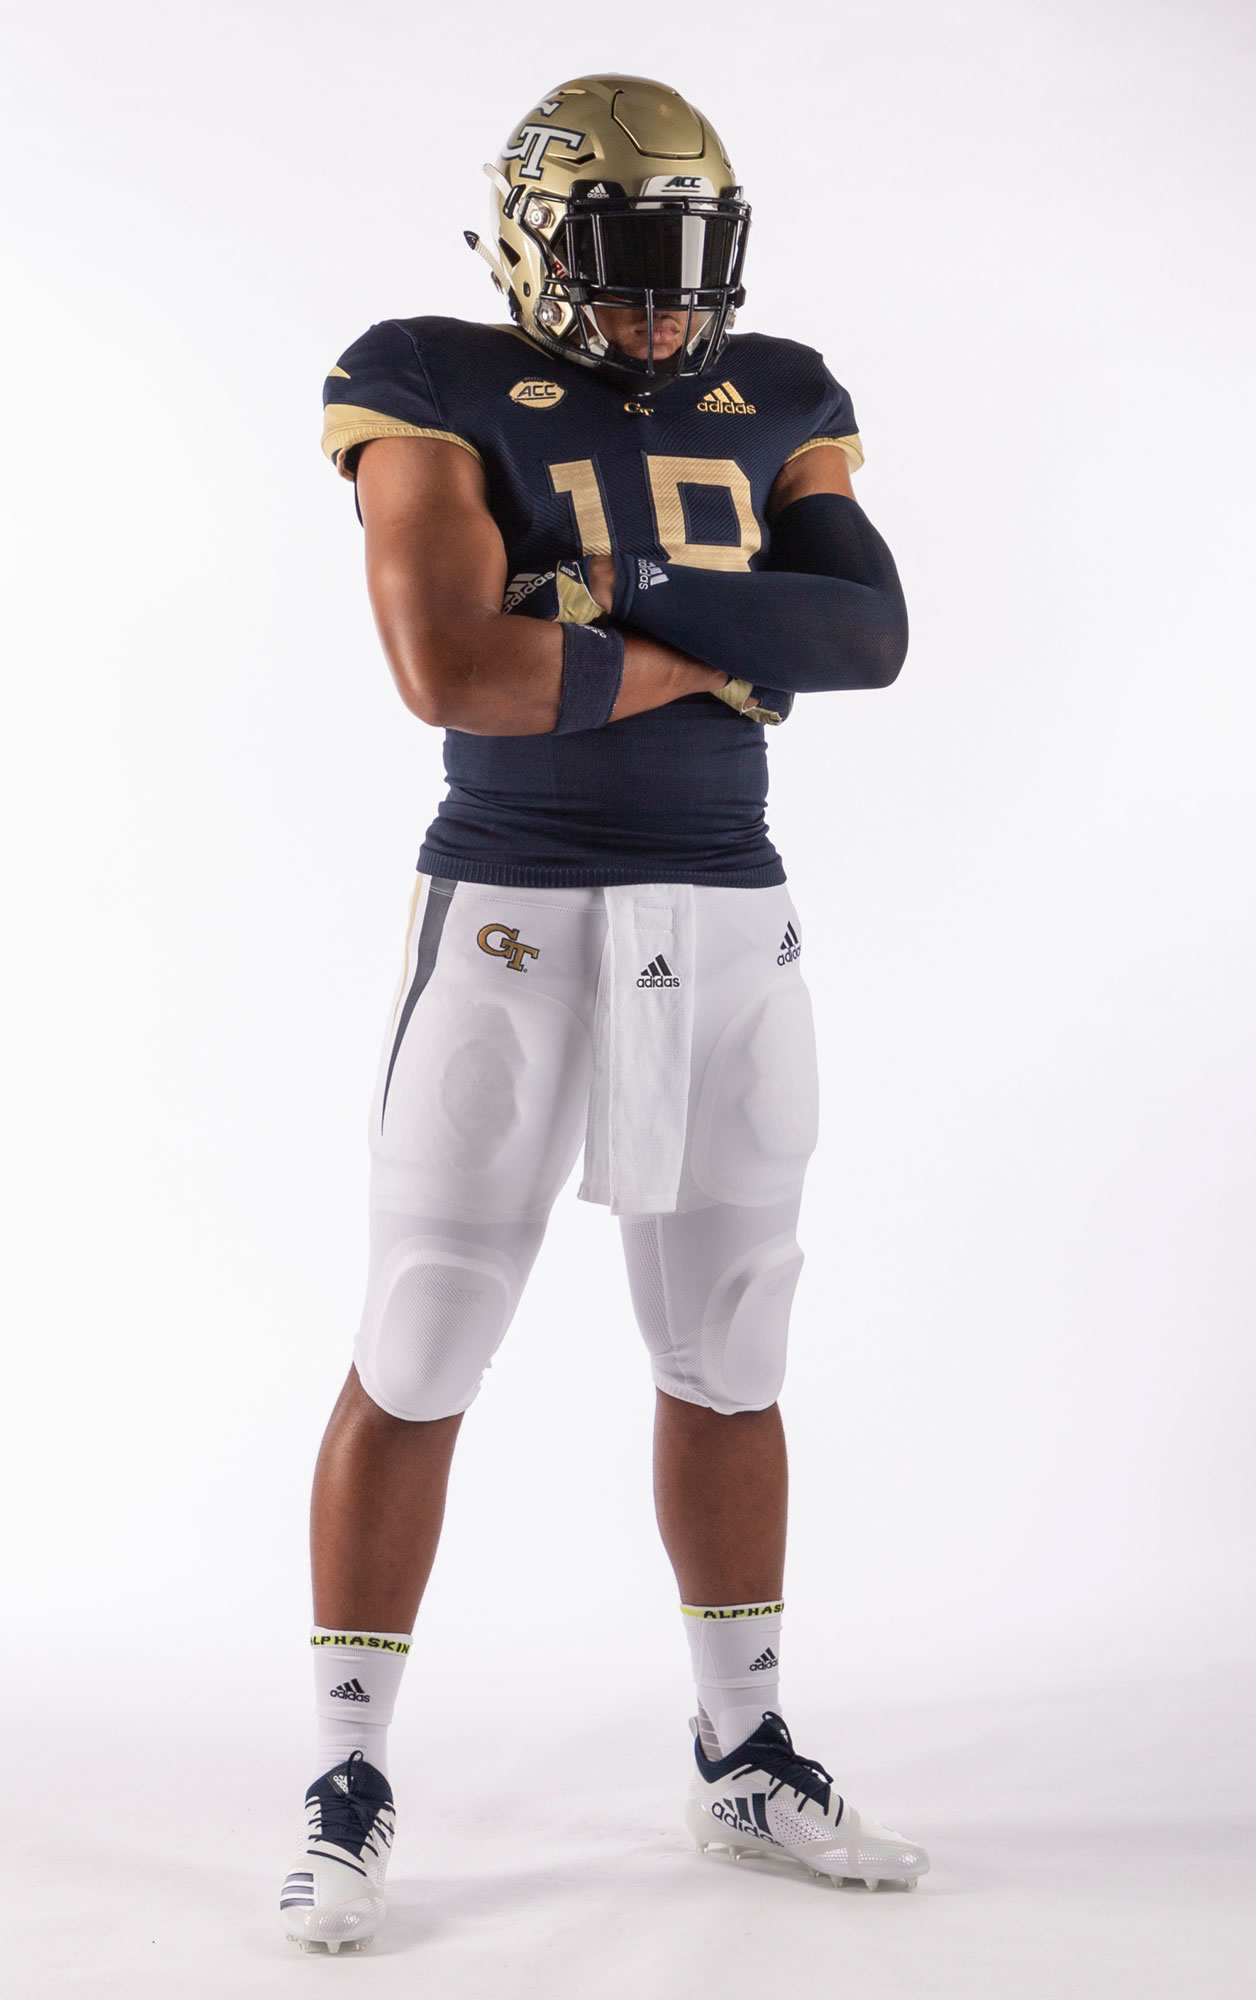 Saturday S Uniforms A Nod To 1990 National Champs